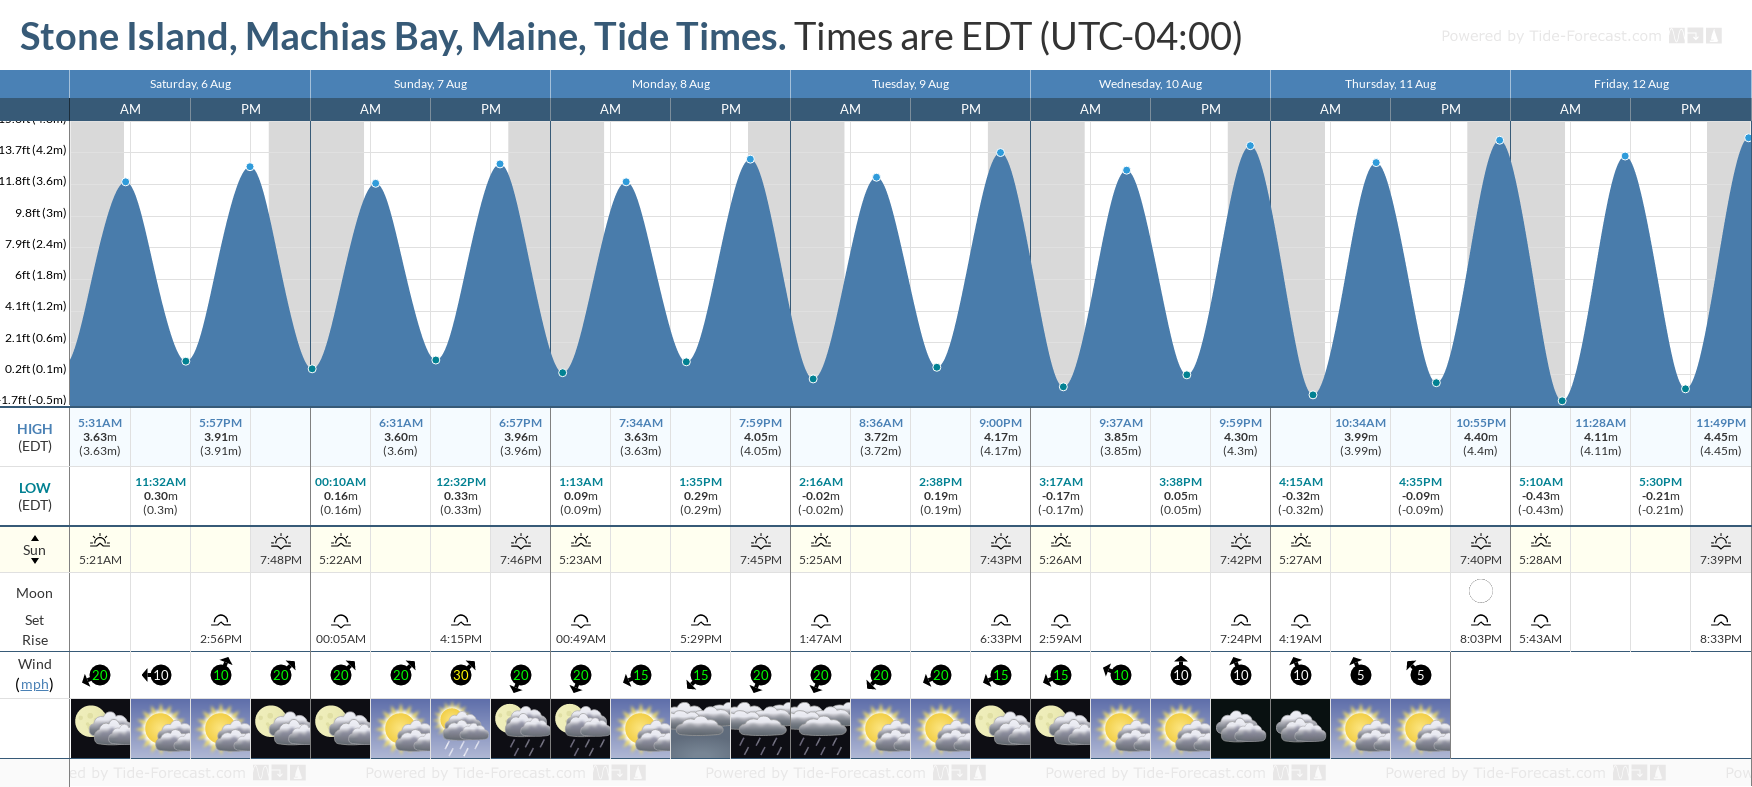 Stone Island, Machias Bay, Maine Tide Chart including high and low tide tide times for the next 7 days